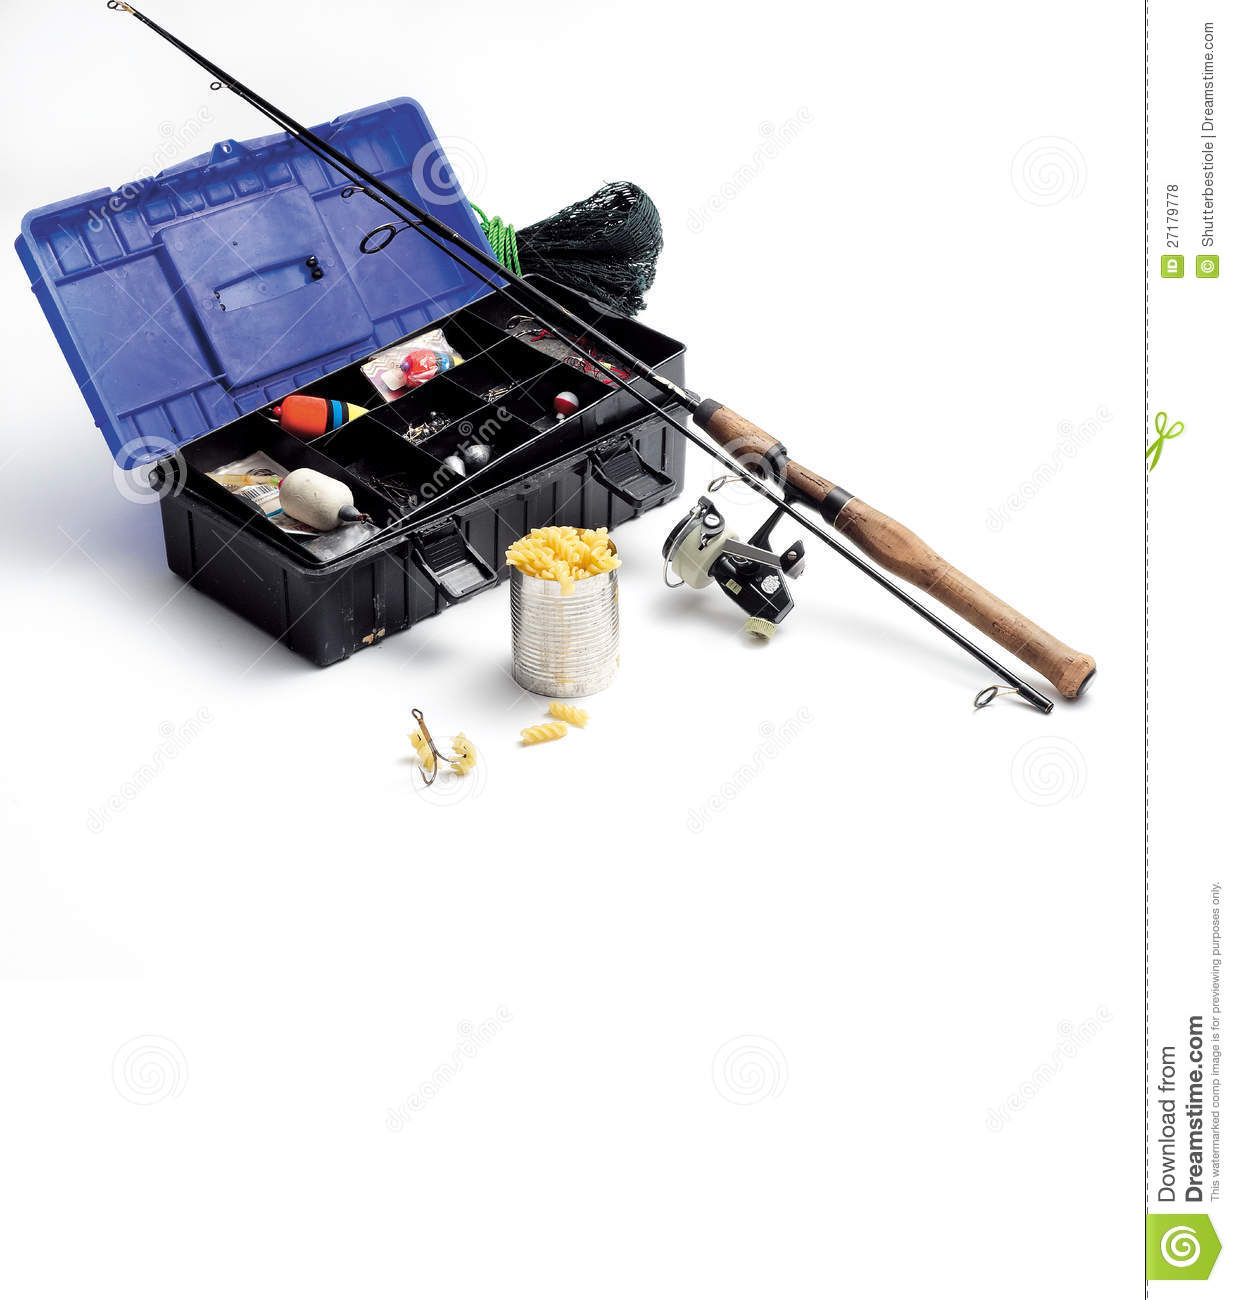 Fishing Equipment Royalty Free Stock Photos - Image: 27179778